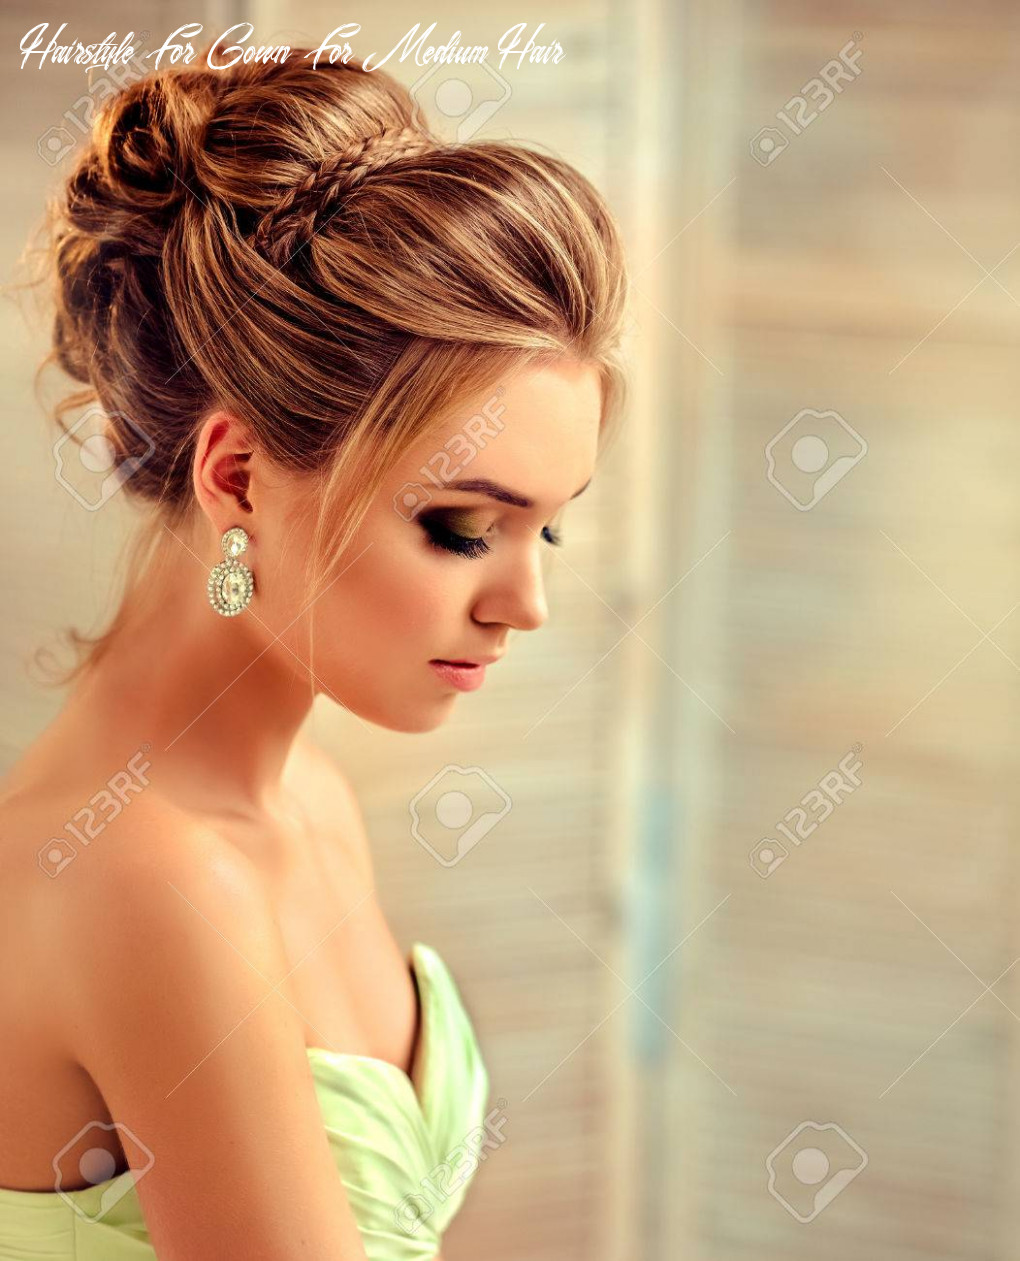 Beautiful woman dressed in evening gown example of wedding hairstyle